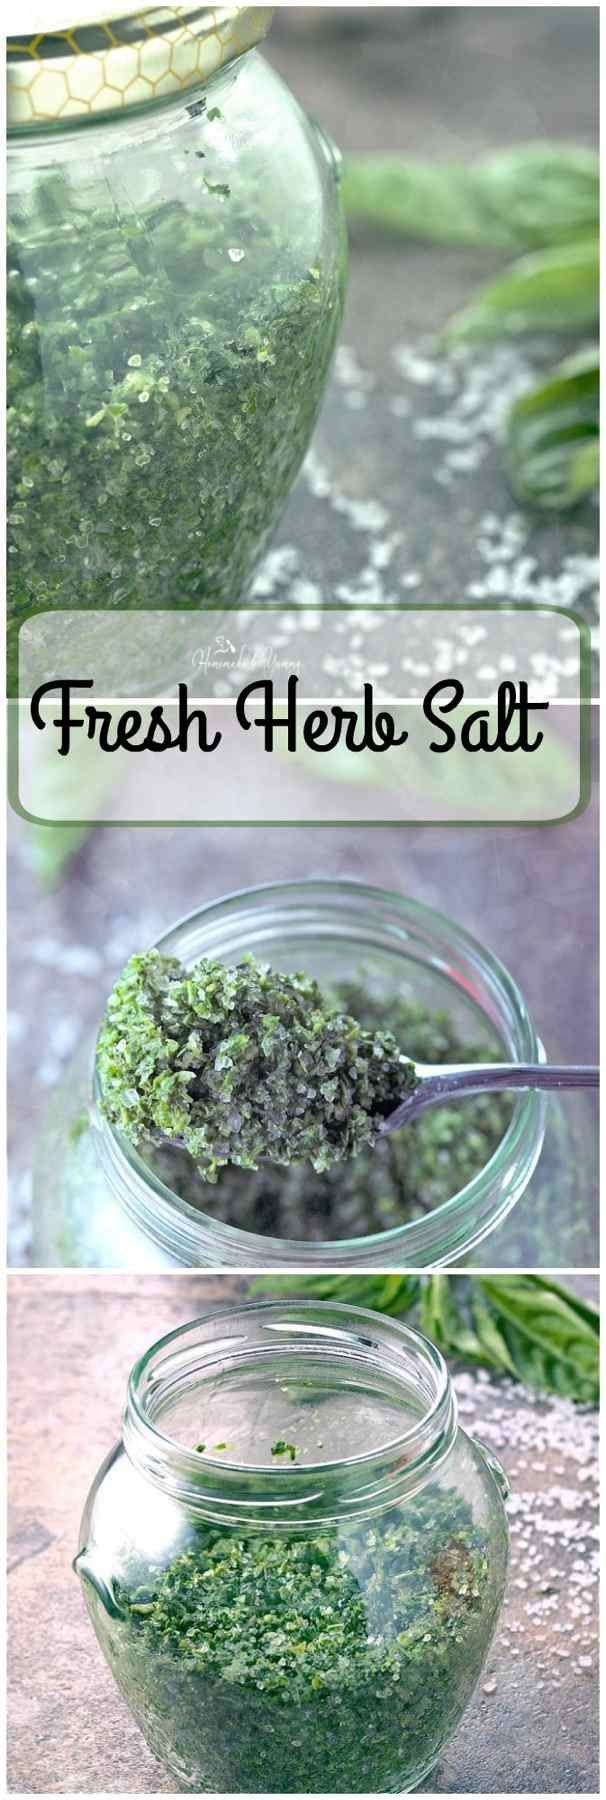 Fresh Herb Salt is so easy to make. Perfect way to preserve all those wonderful garden/market herbs. | homemadeandyummy.com